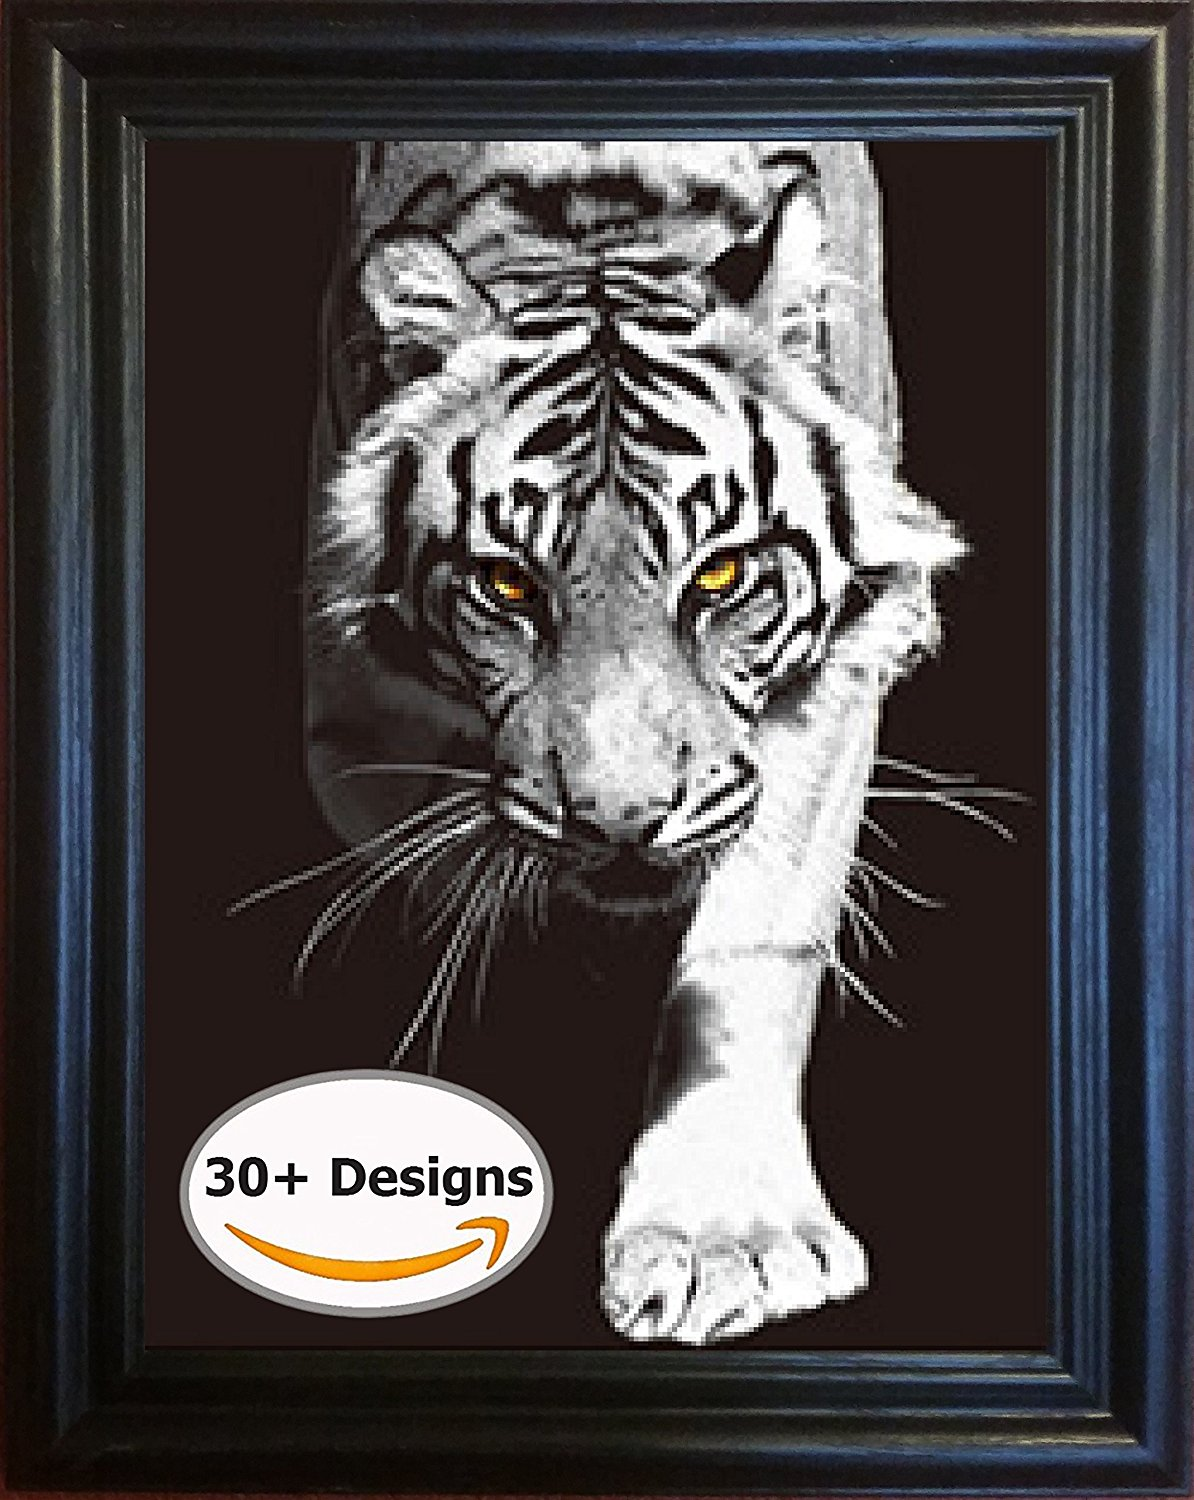 The 3D Art Company- Framed Black & white cats- Unbelievable Life Like 3D Art Pictures, Changes between different images! Lenticular Posters, Cool Art Deco, Unique Wall Art Decor, Dozens to Choose From